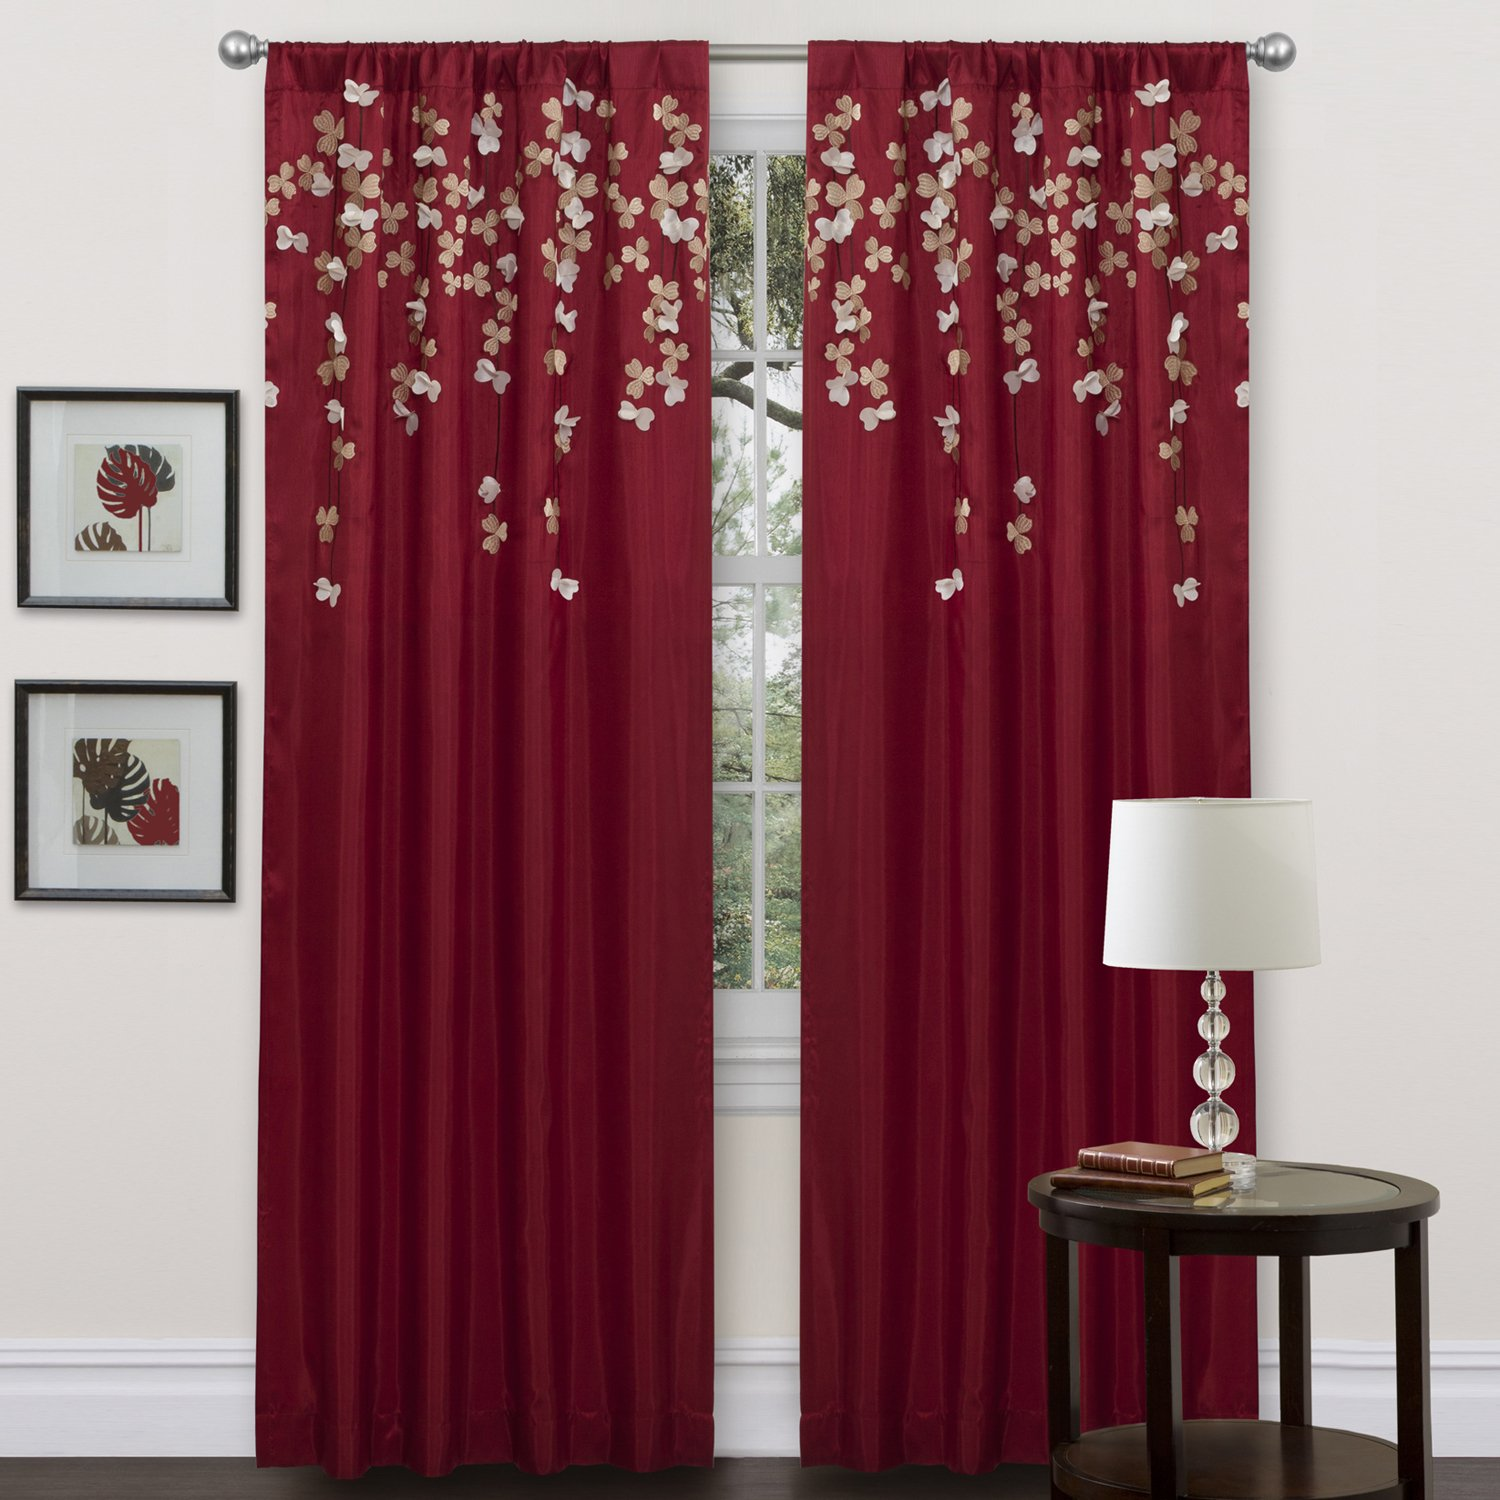 Amazon.com: Lush Decor Flower Drop 84 X 42 Inches Curtain Panel, Red: Home  U0026 Kitchen Part 4